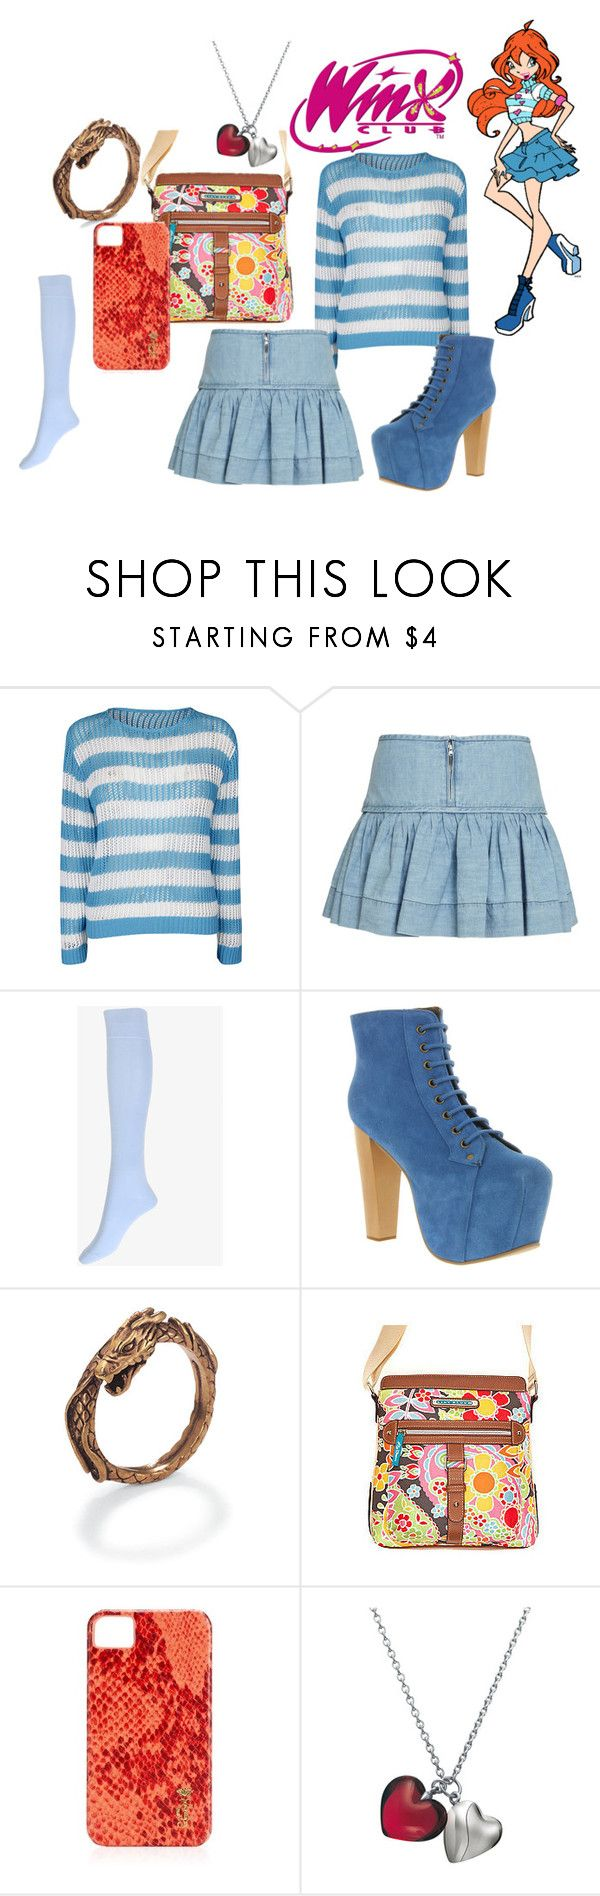 """""""Bloom - Winx Club"""" by brittany-coughlin ❤ liked on Polyvore featuring Étoile Isabel Marant, Forever 21, Jeffrey Campbell, Lily Bloom, Juicy Couture and Baccarat"""